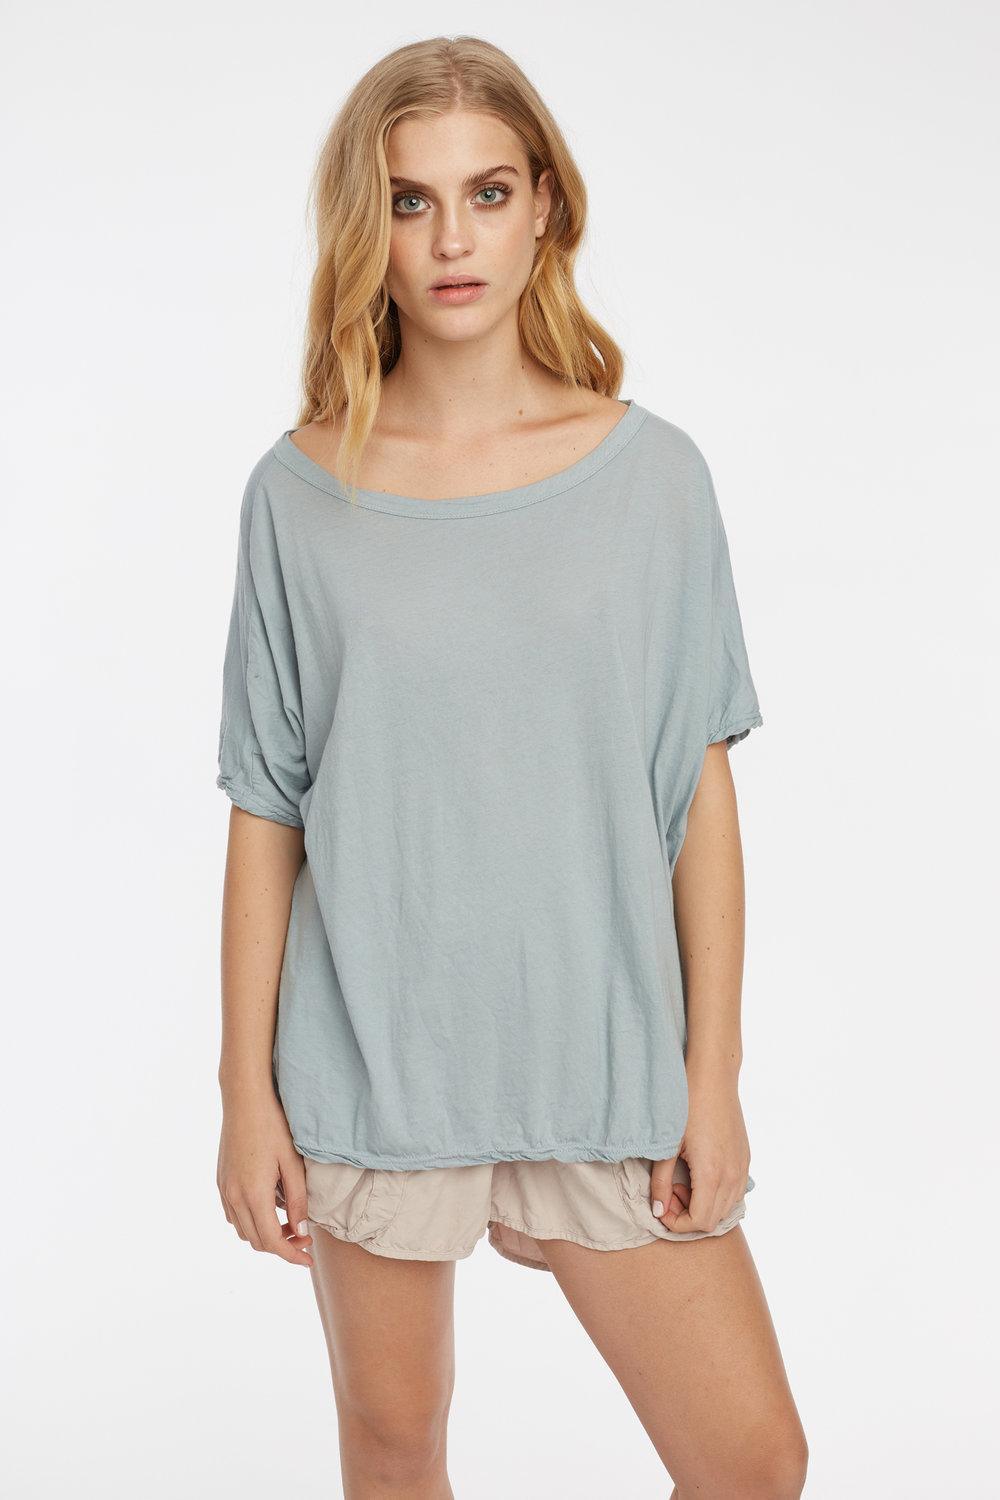 LOOSE TEE DOVE GREY. POCKET SHORT TAUPE